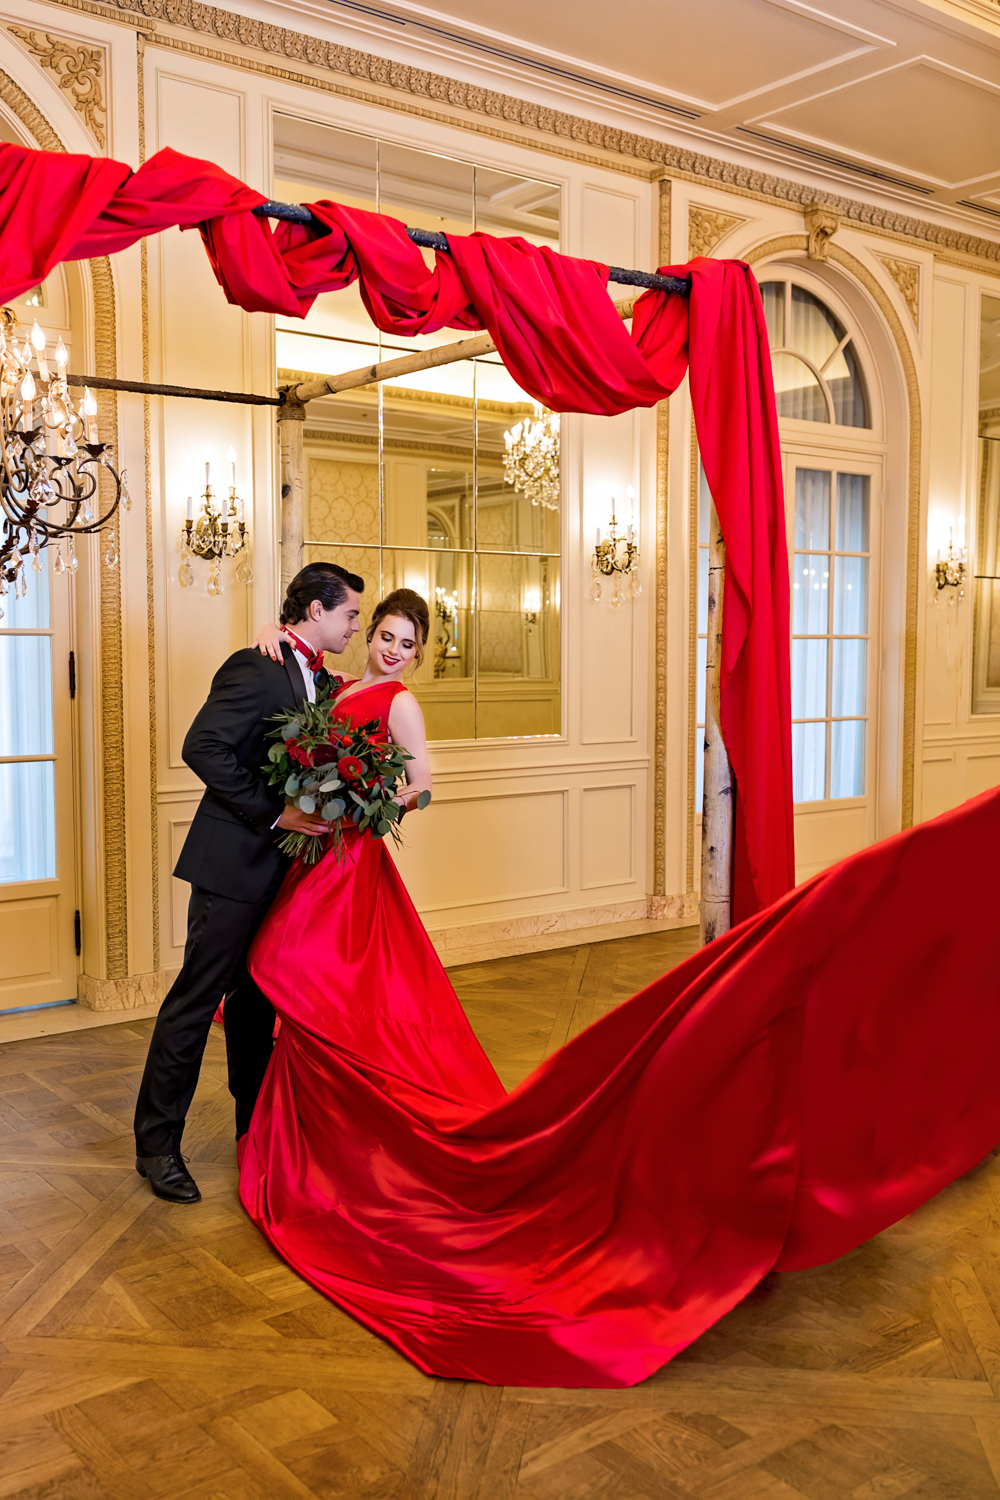 San Diego Red Chinese Wedding Styled Shoot The Westgate Hotel Venue-5889.jpg